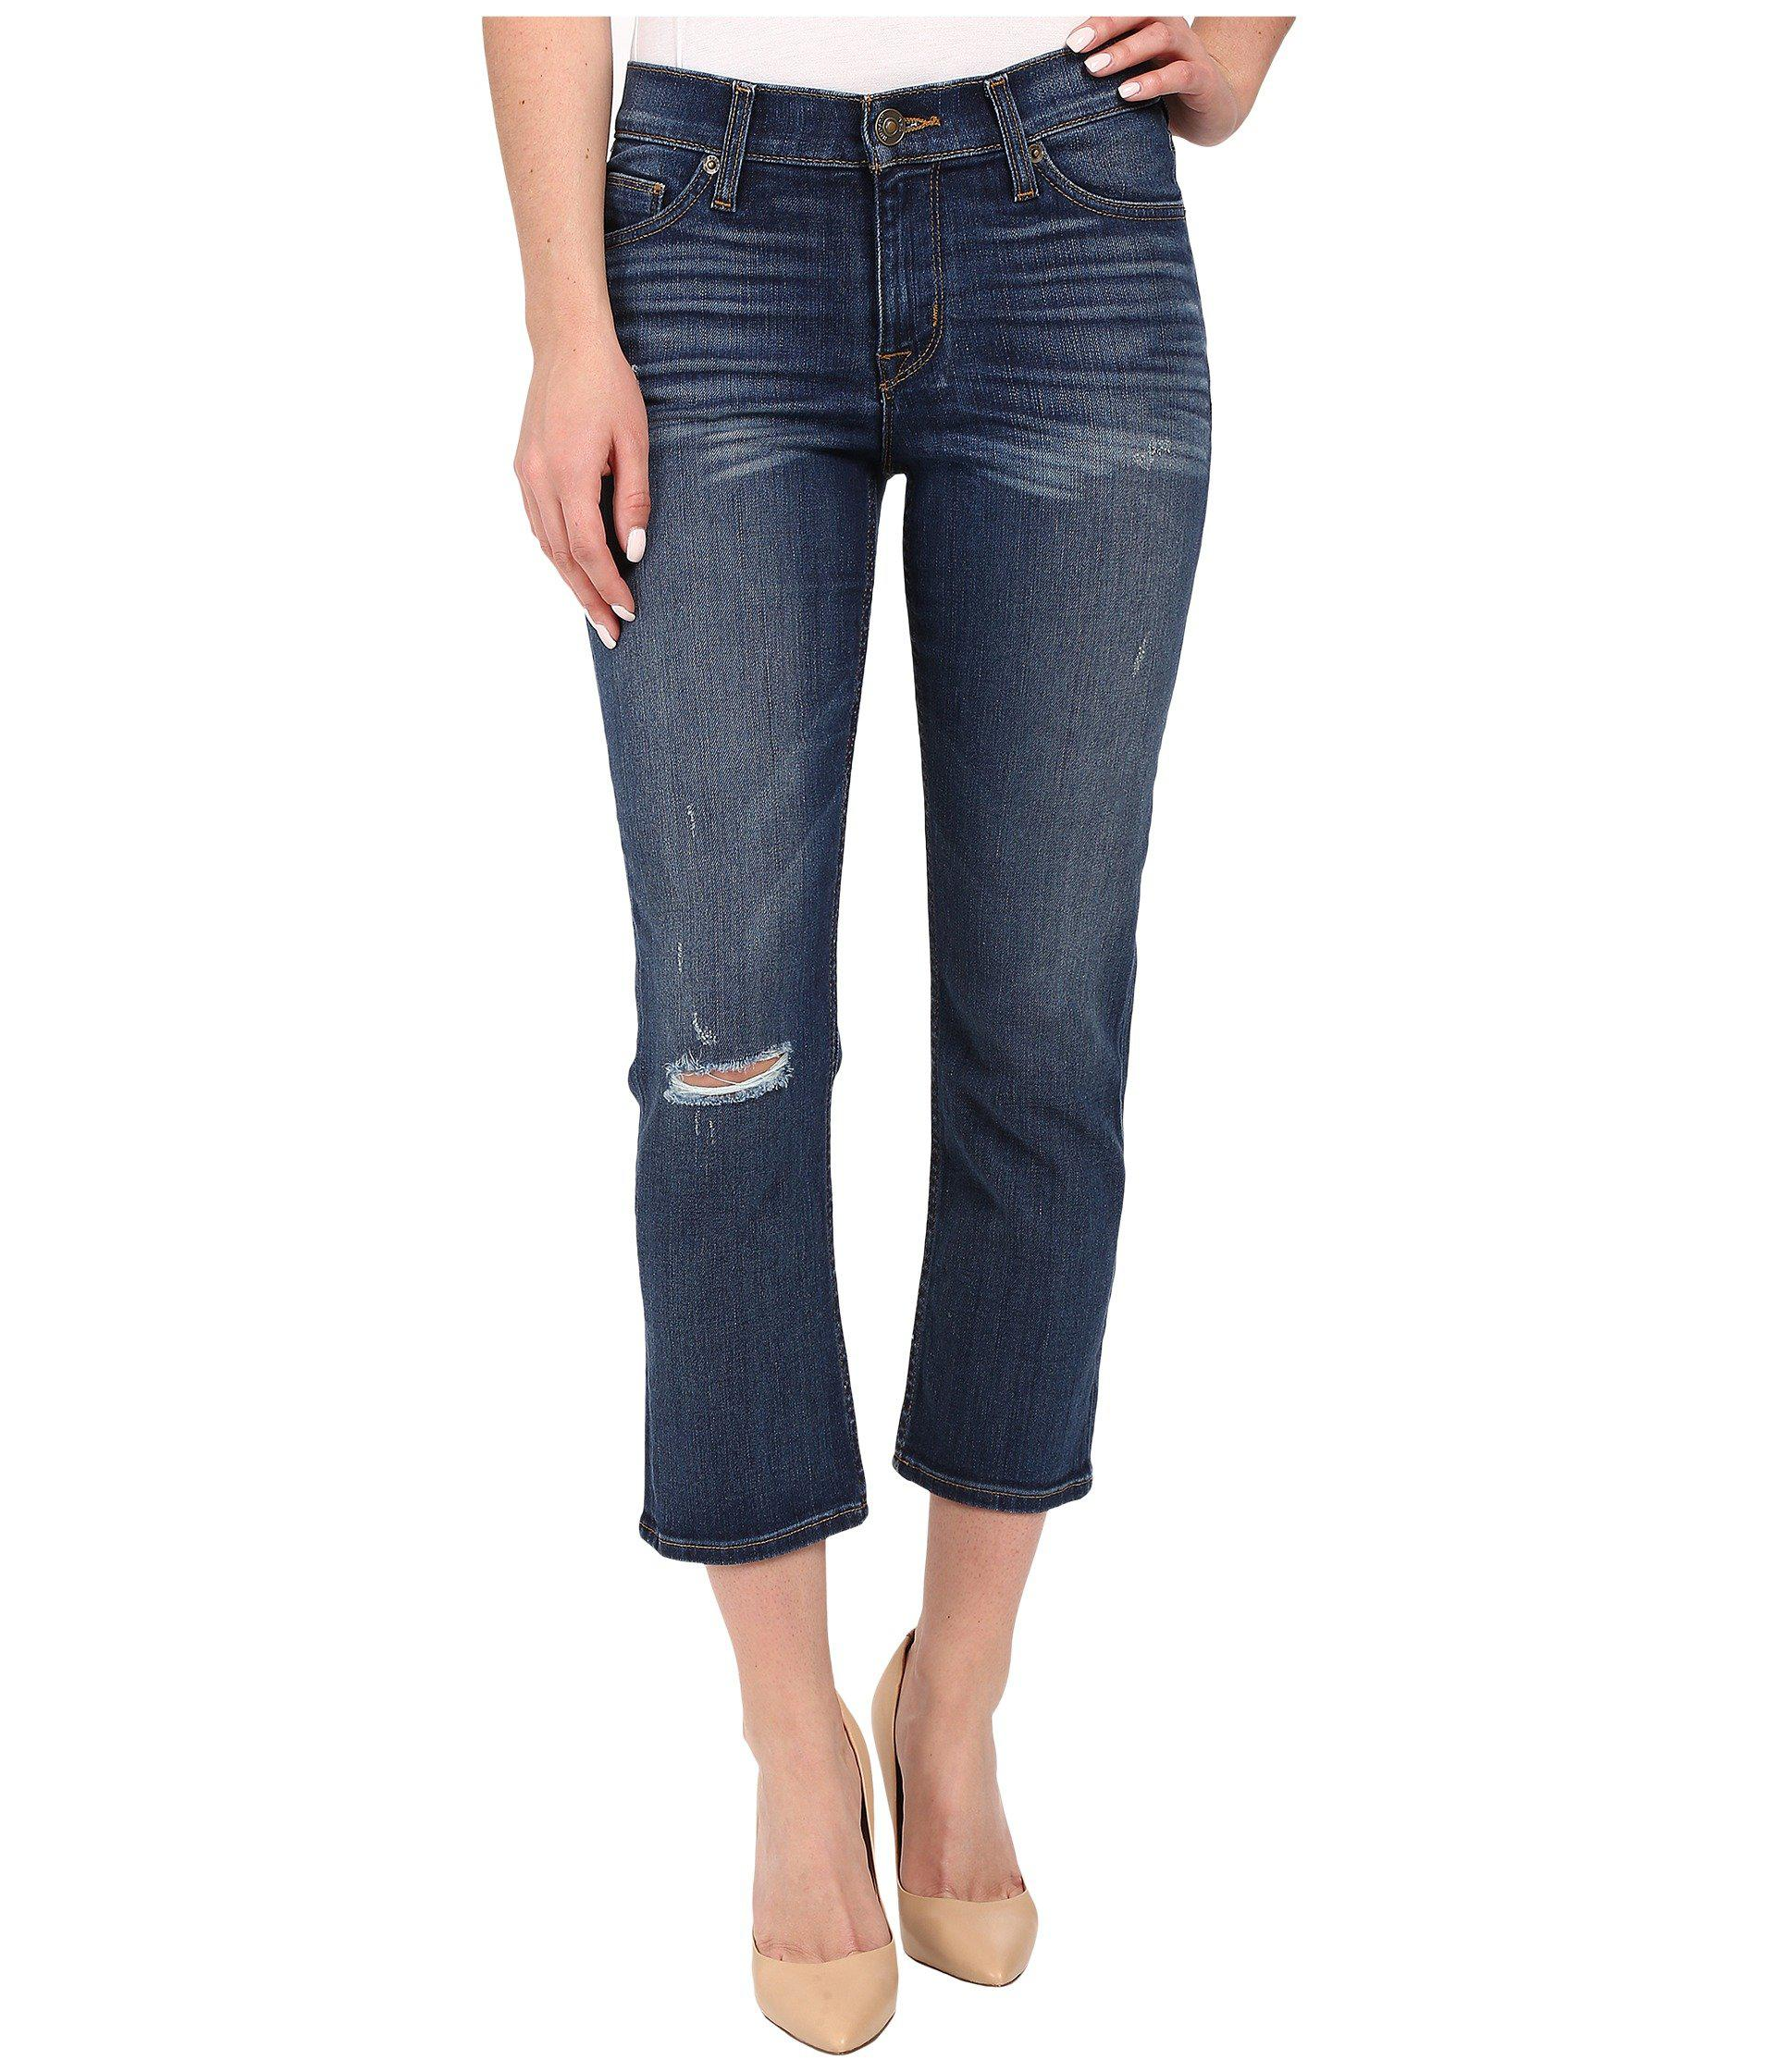 a4f5bc237d5 Hudson Jeans Fallon Crop In Offshore in Blue - Lyst